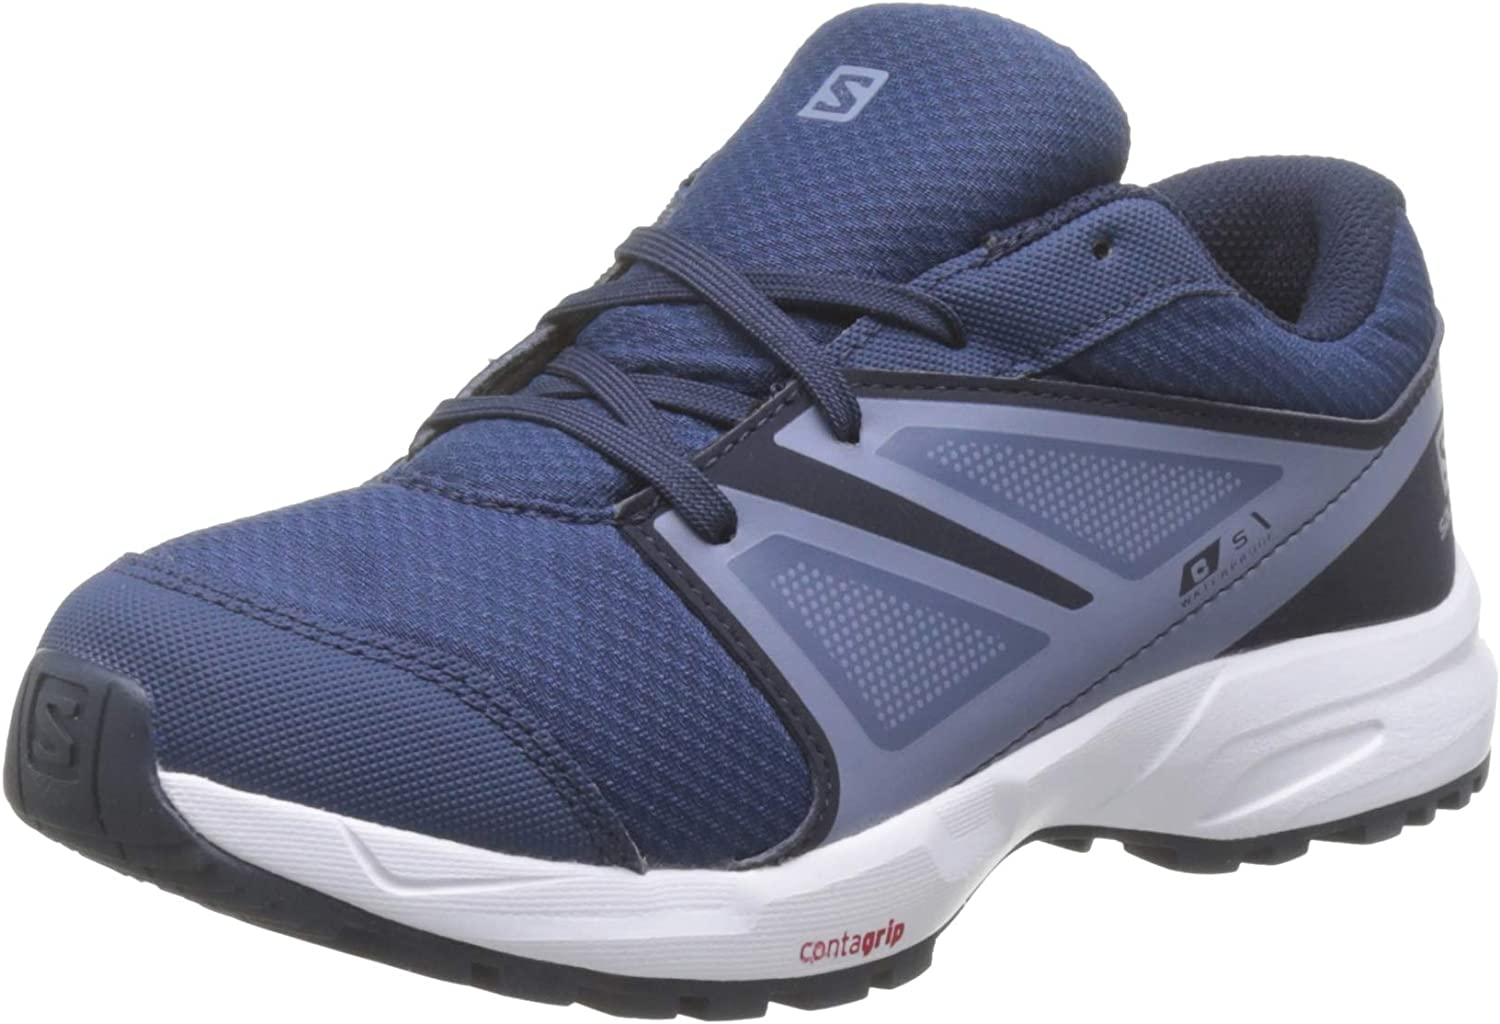 Salomon Sense CSWP J, Zapatillas de Trail Running Unisex Niños: Amazon.es: Zapatos y complementos